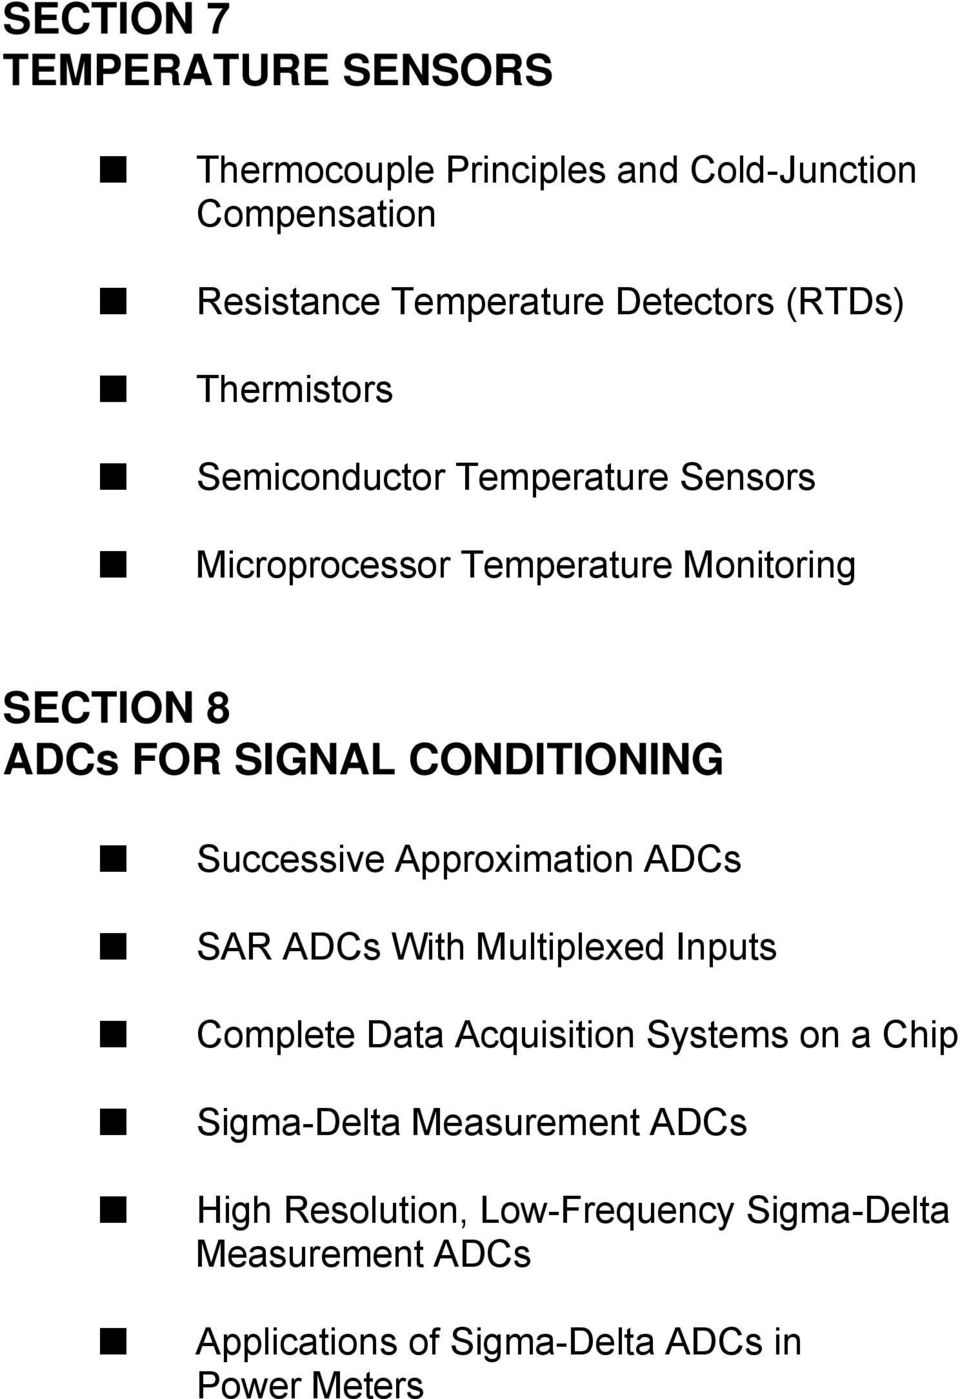 Practical Design Techniques For Sensor Signal Conditioning Pdf Analog Ad620 High Accuracy Instrumentation Amplifier Datasheet Successive Approximation Adcs Sar With Multiplexed Inputs Complete Data Acquisition Systems On A Chip